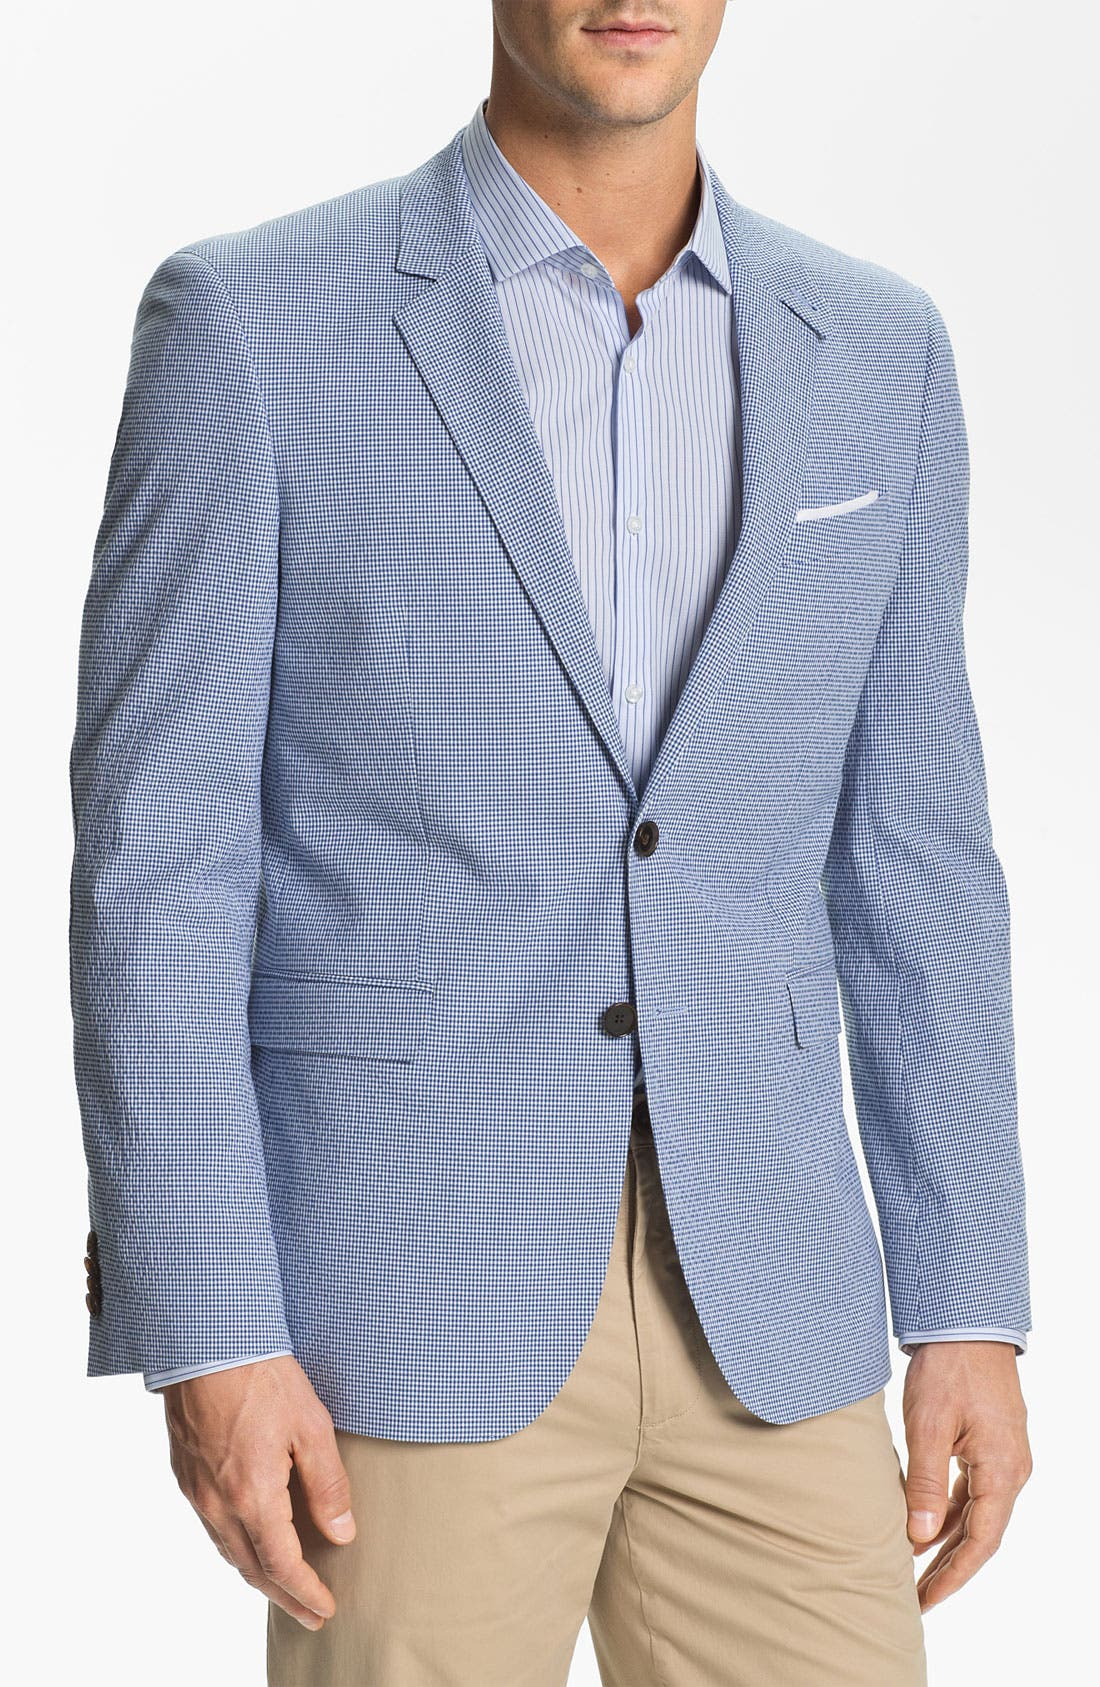 Main Image - BOSS HUGO BOSS 'Rhett' Extra Trim Fit Sportcoat